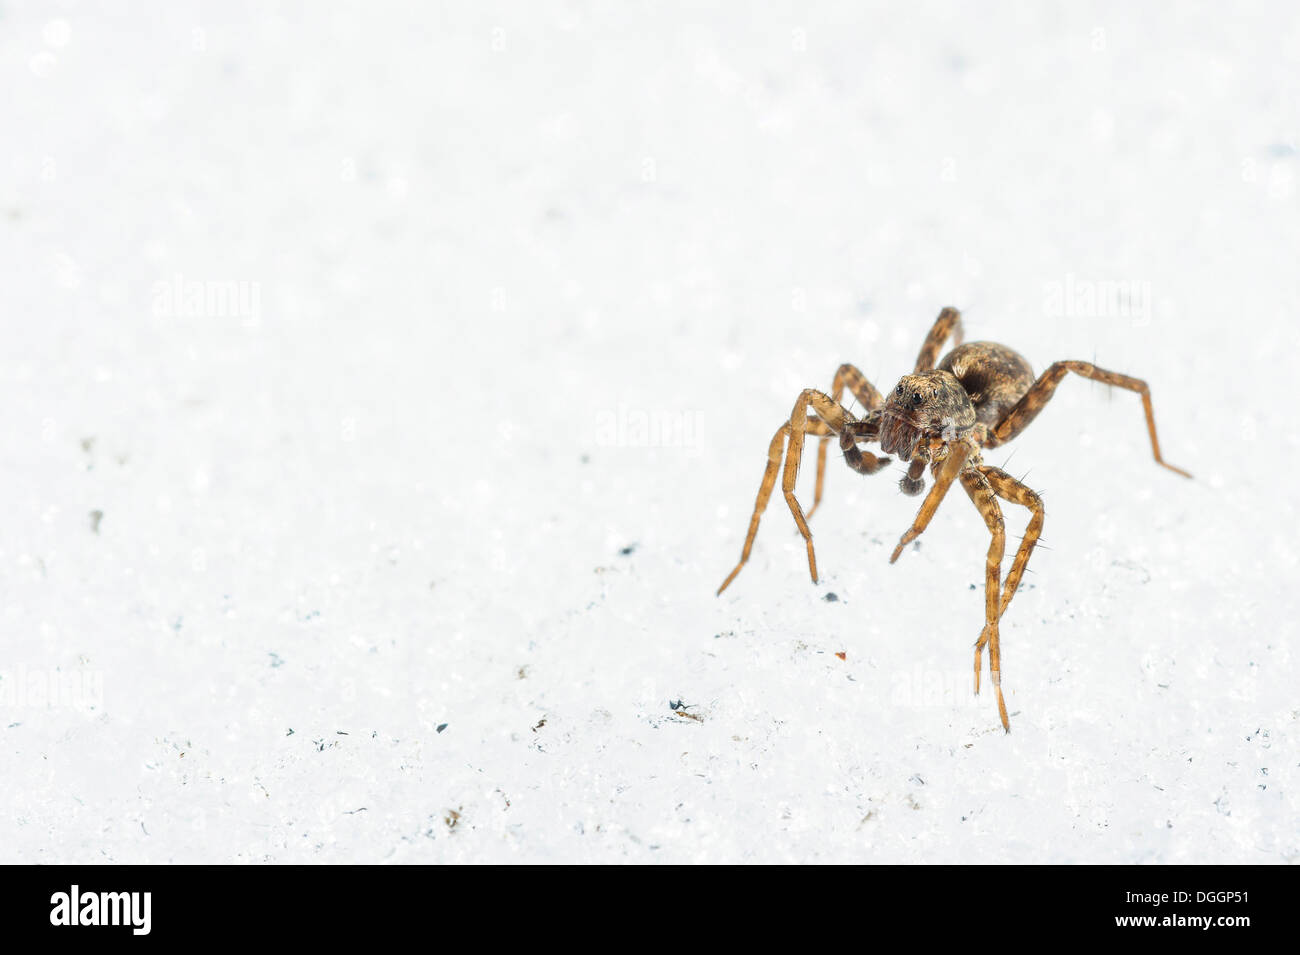 Wolfspider (Pardosa sp.) subadult male, walking on snow in late winter, Italy, March - Stock Image